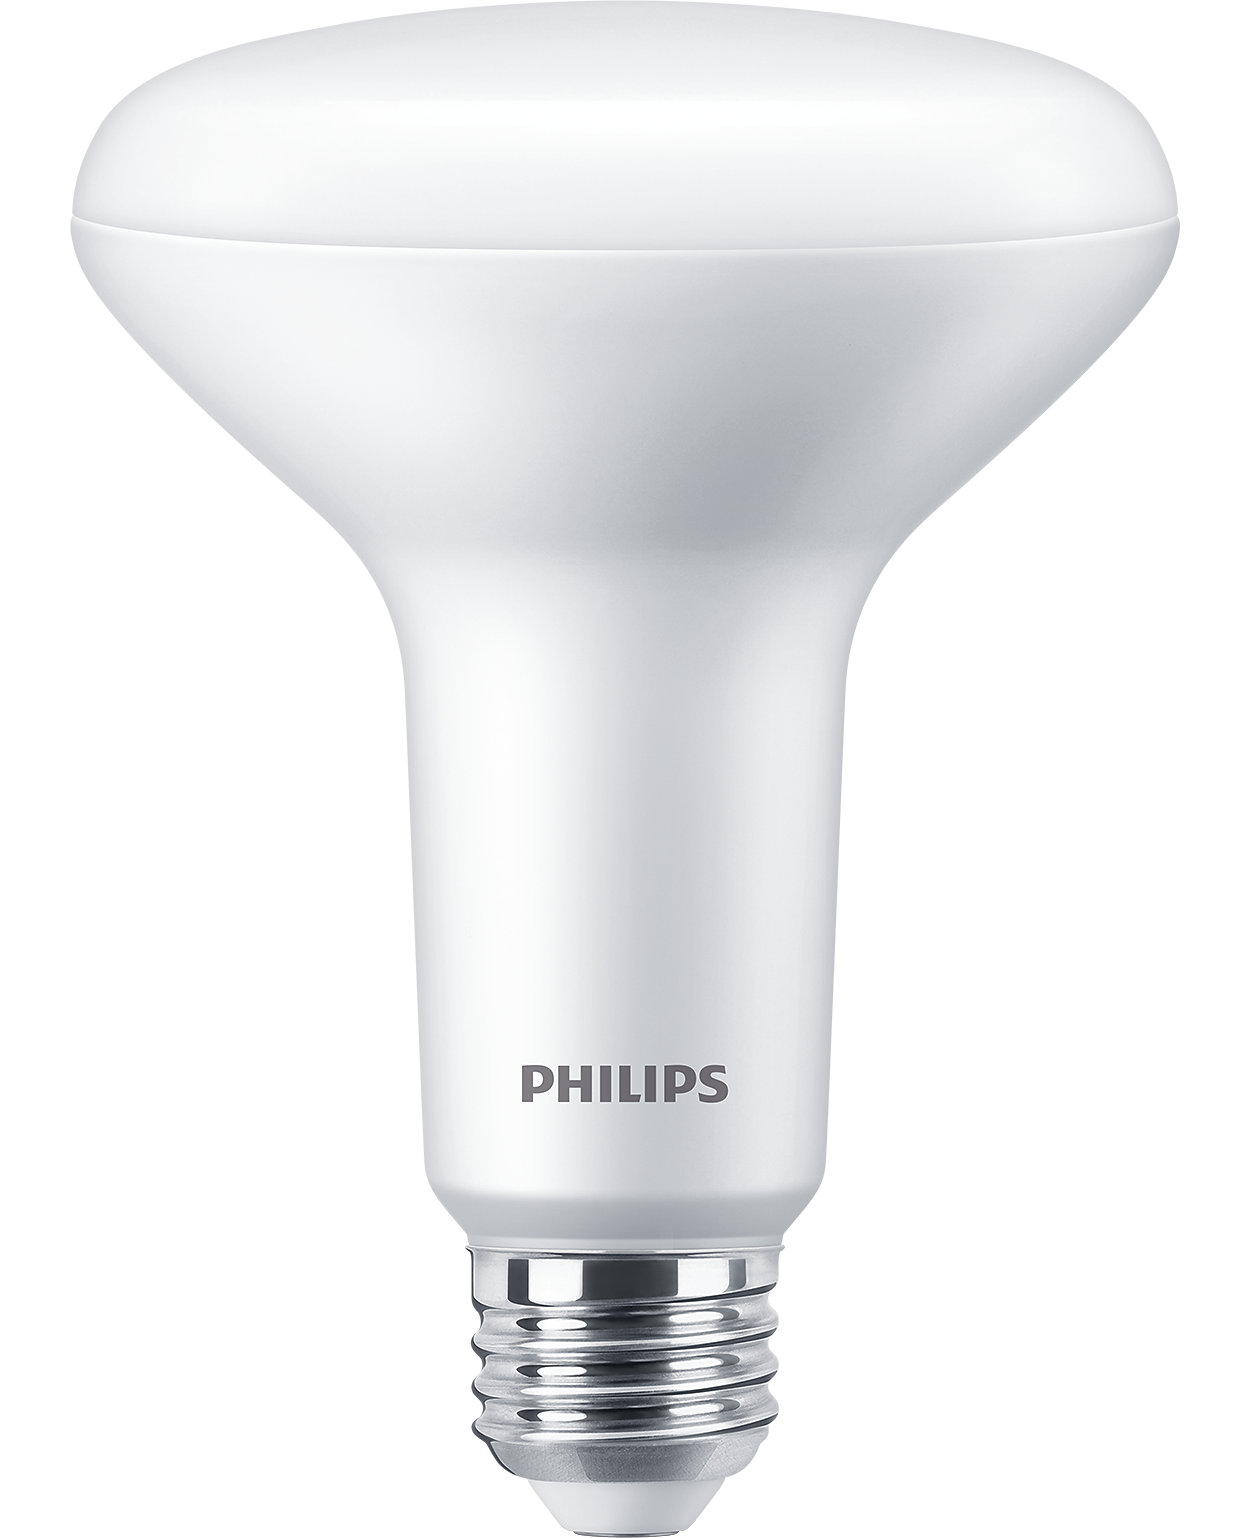 Attractive, dimmable, and afforadlble LED BR30 lamp solution